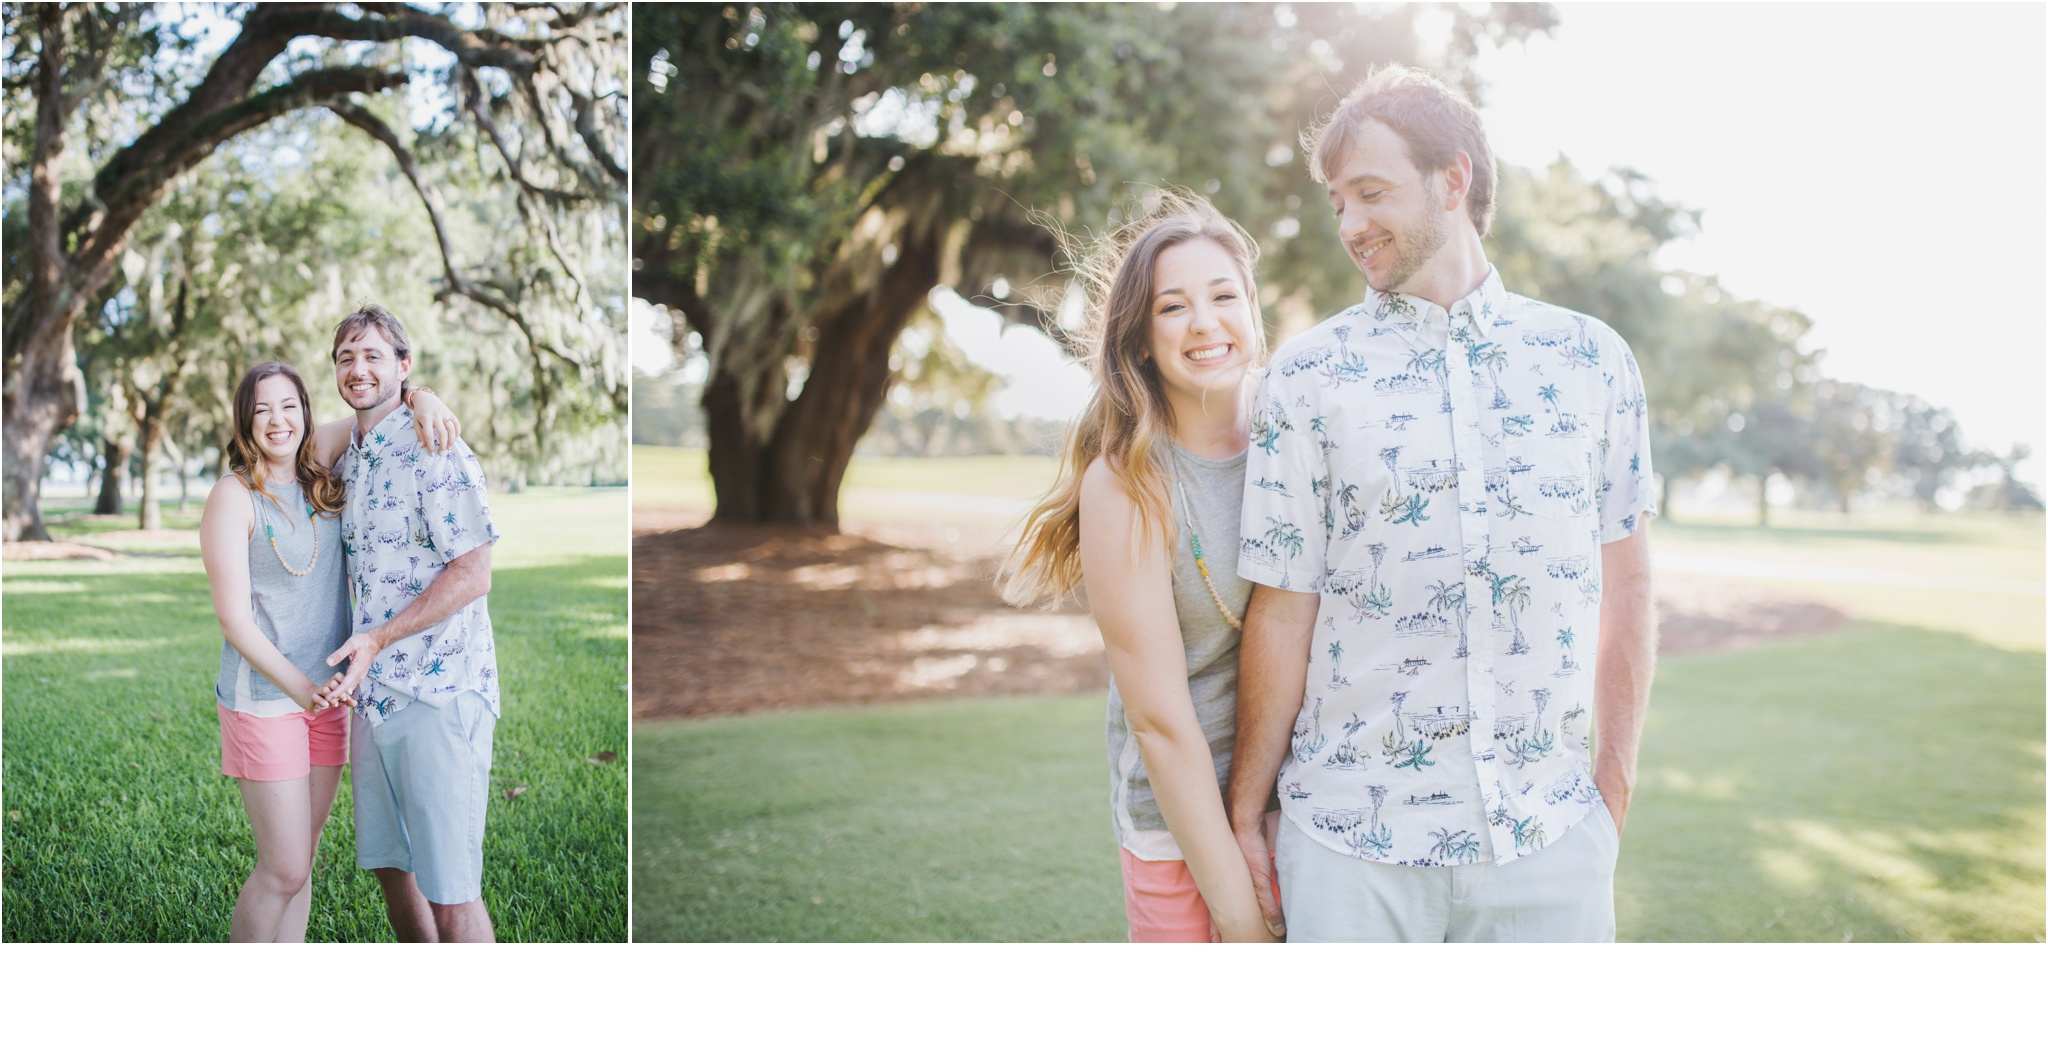 Rainey_Gregg_Photography_St._Simons_Island_Georgia_California_Wedding_Portrait_Photography_1429.jpg